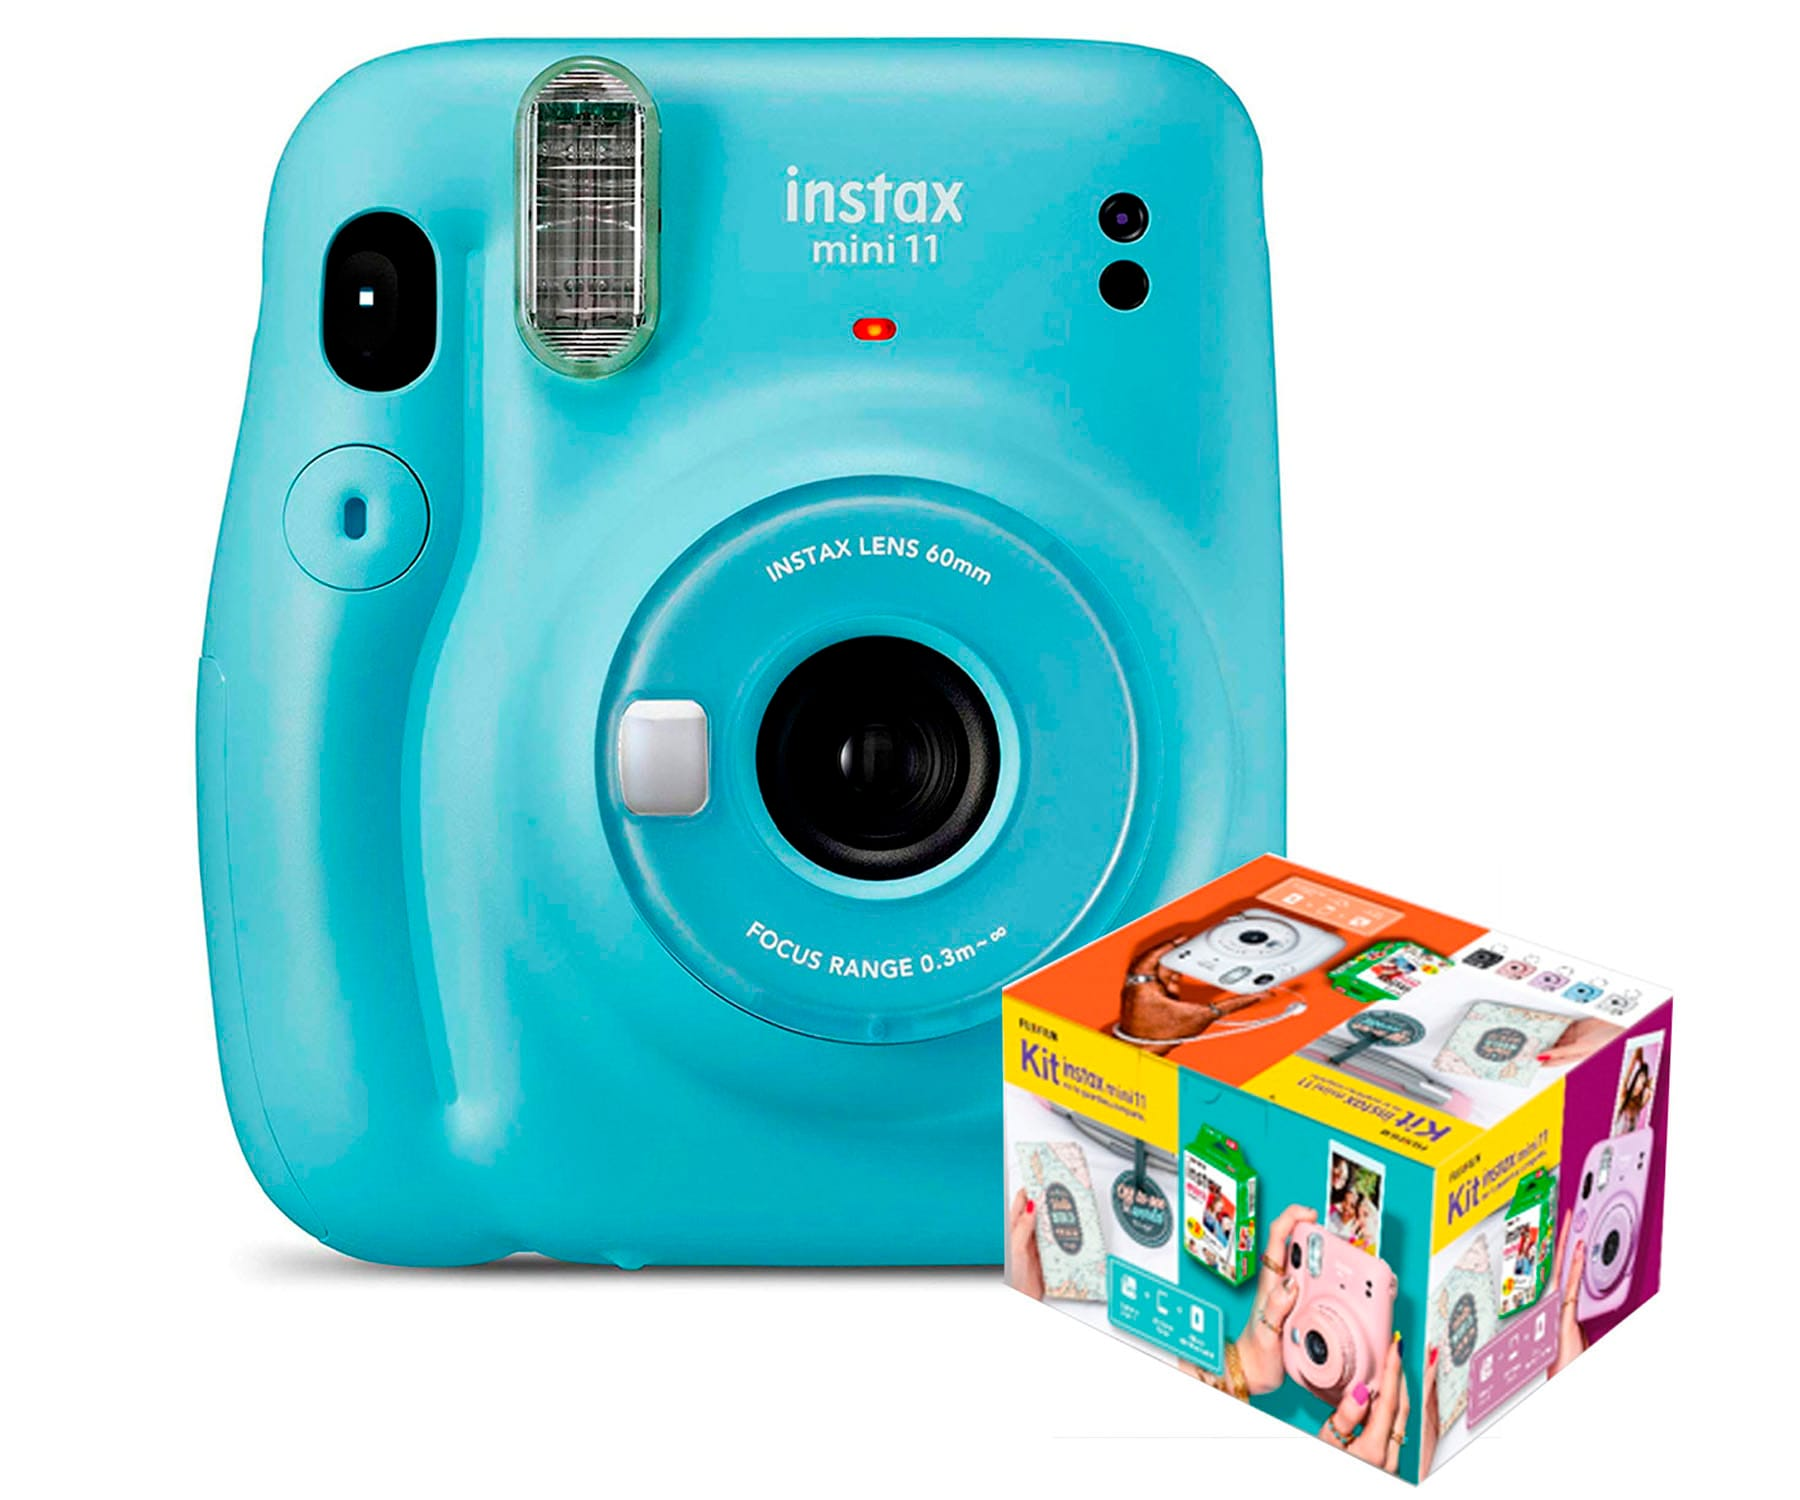 FUJIFILM INSTAX MINI 11 AZUL CIELO CÁMARA INSTANTÁNEA KIT MR. WONDERFUL